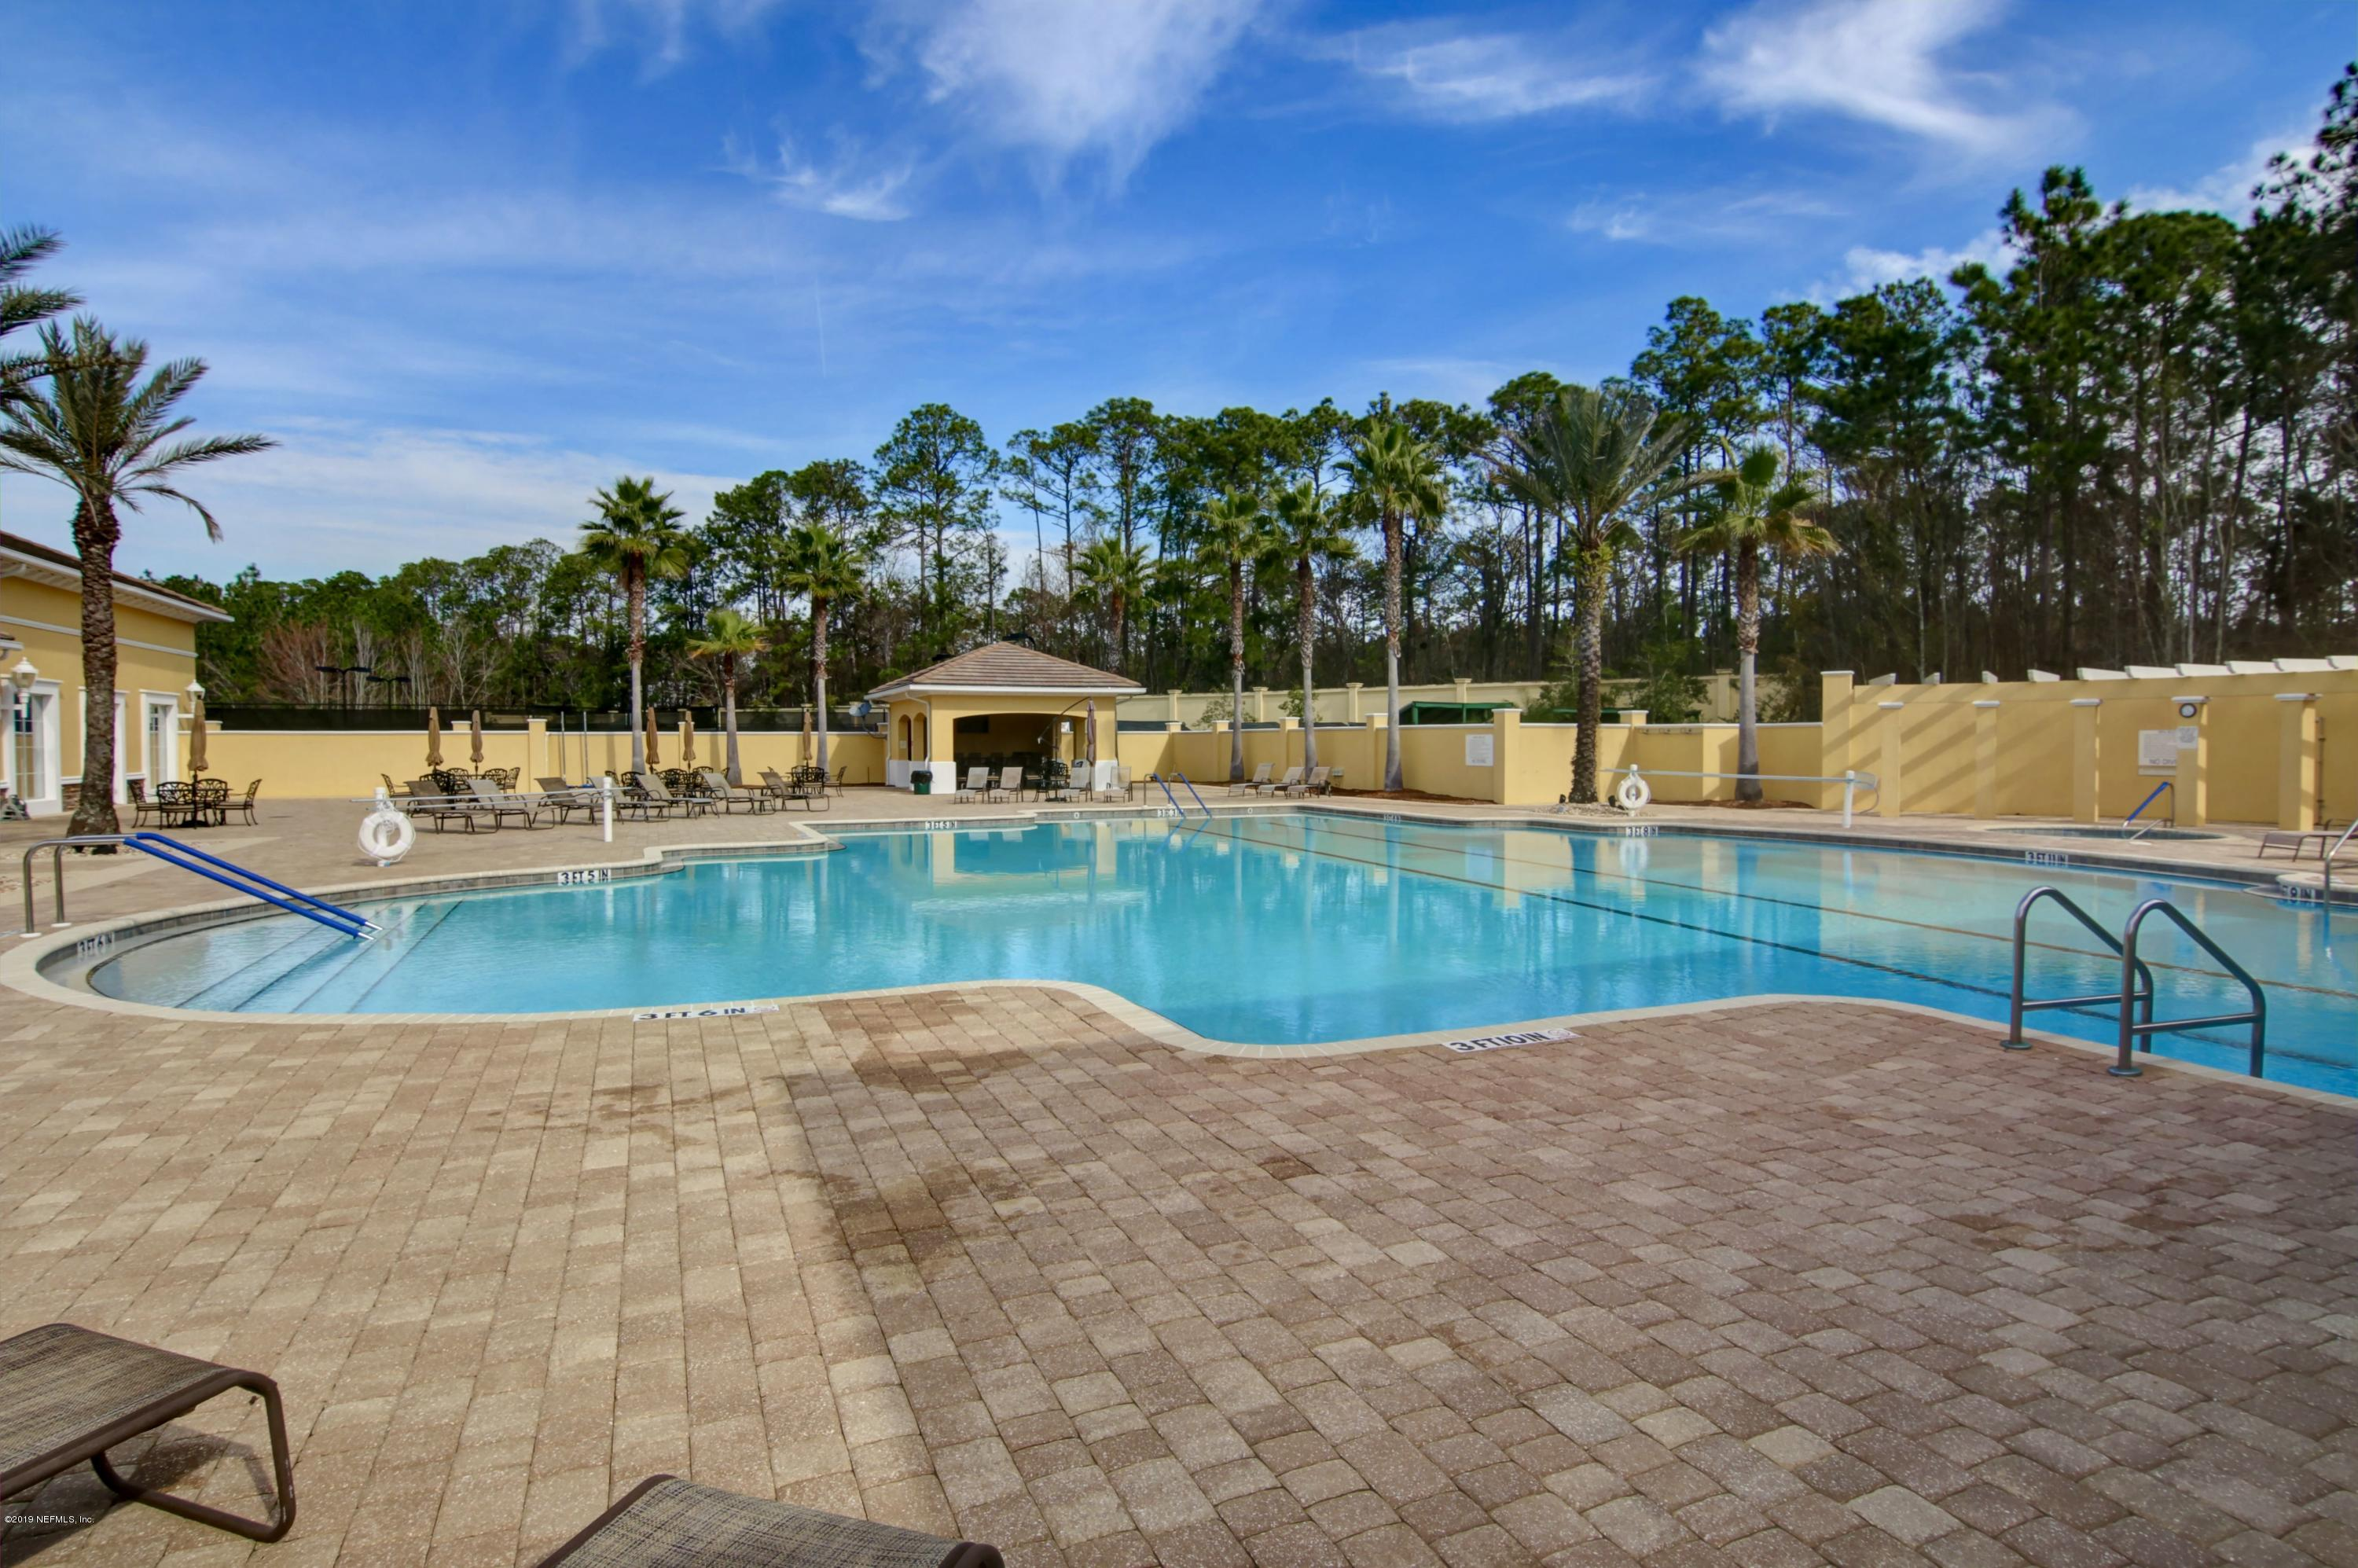 605 LEGACY, ST AUGUSTINE, FLORIDA 32092, 3 Bedrooms Bedrooms, ,2 BathroomsBathrooms,Residential - single family,For sale,LEGACY,974157